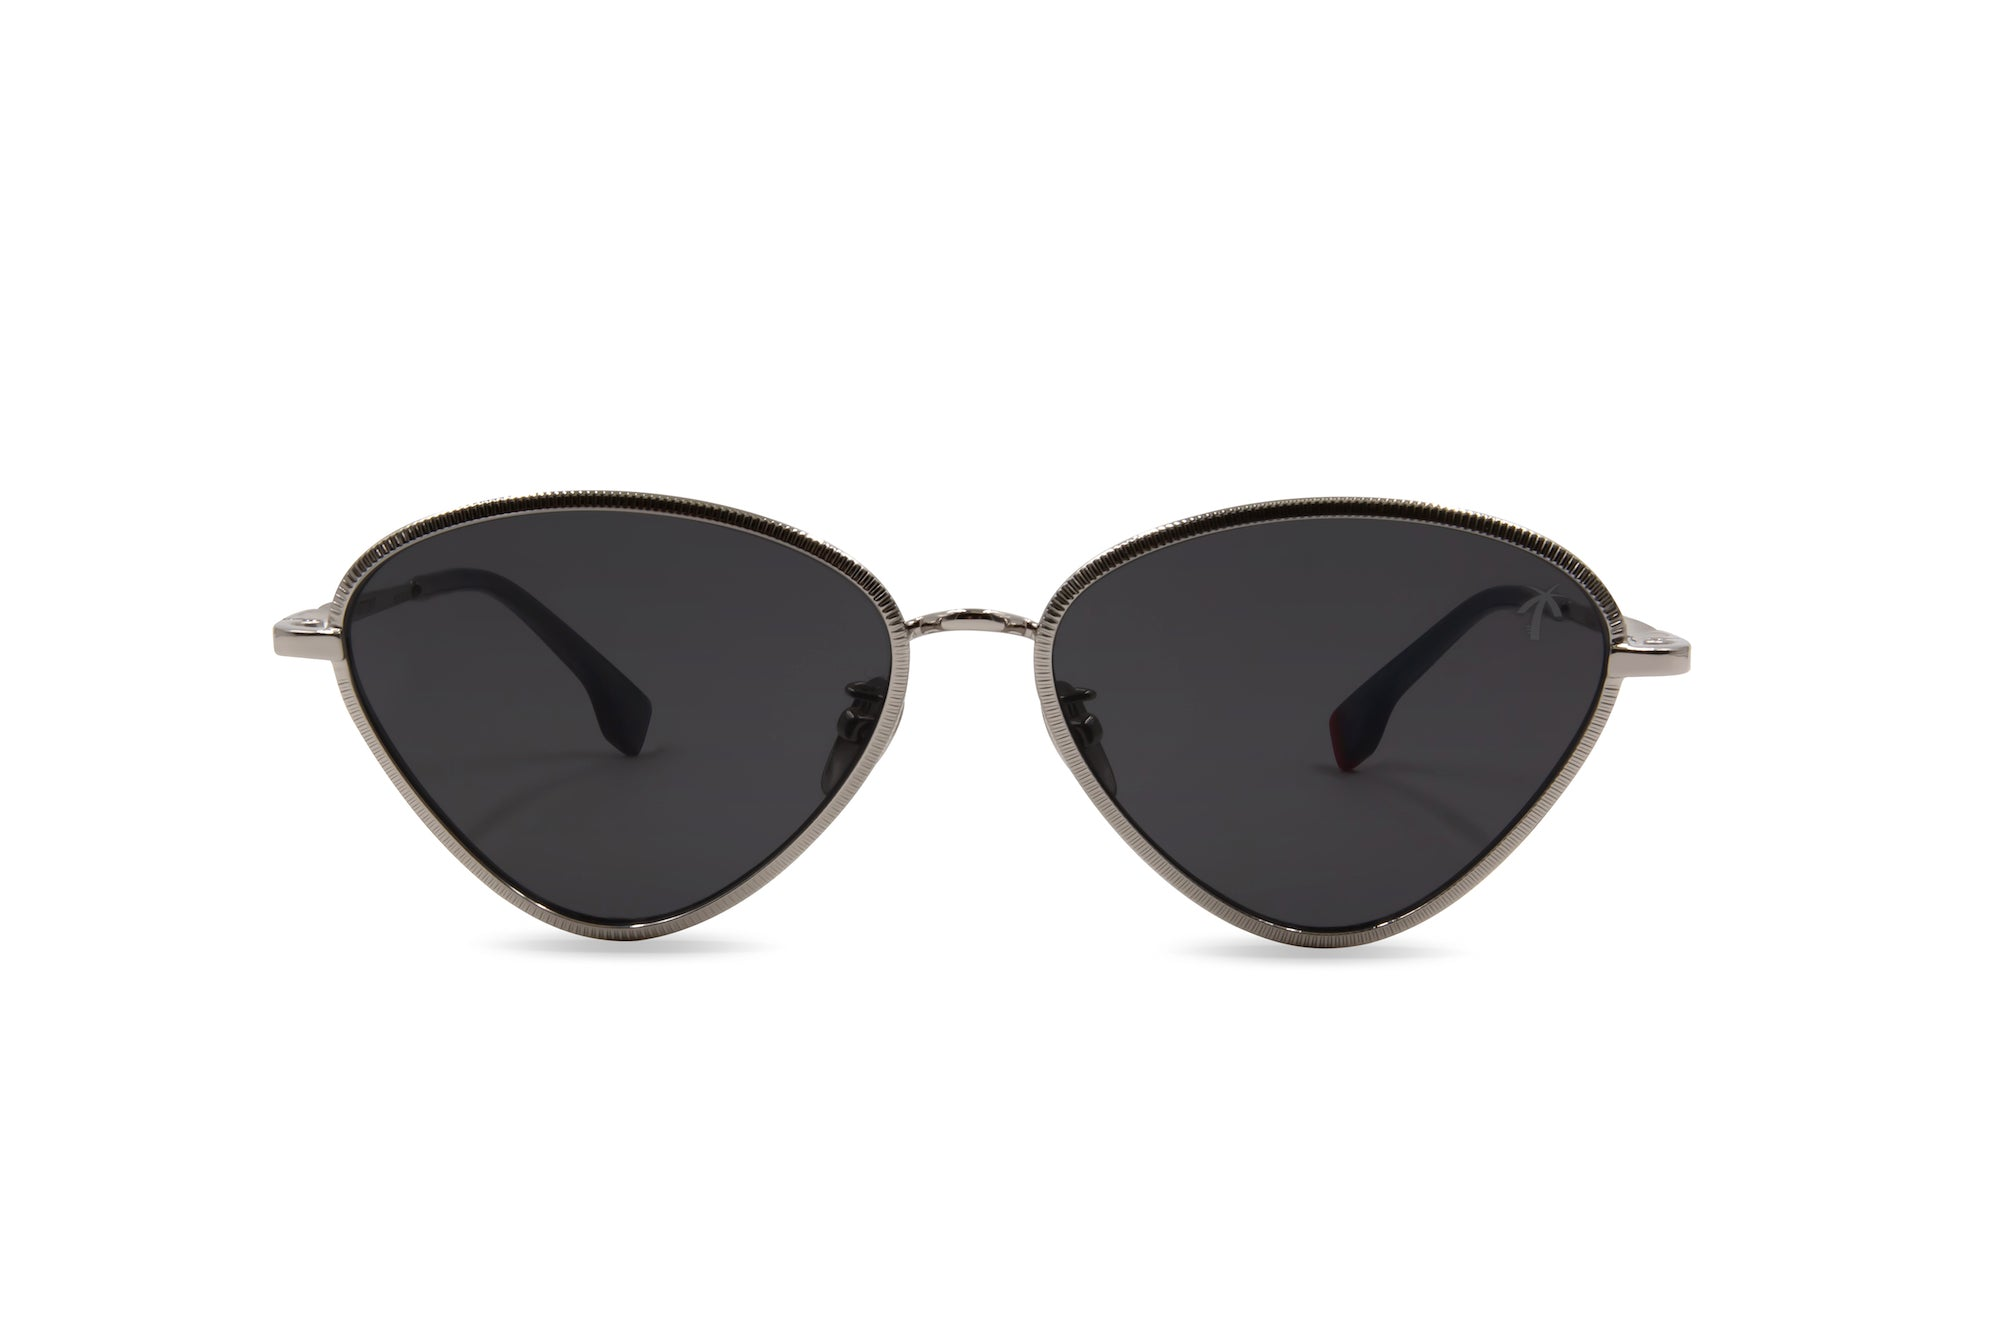 Olive in Black (Special Edition) - Peppertint - Designer sunglasses